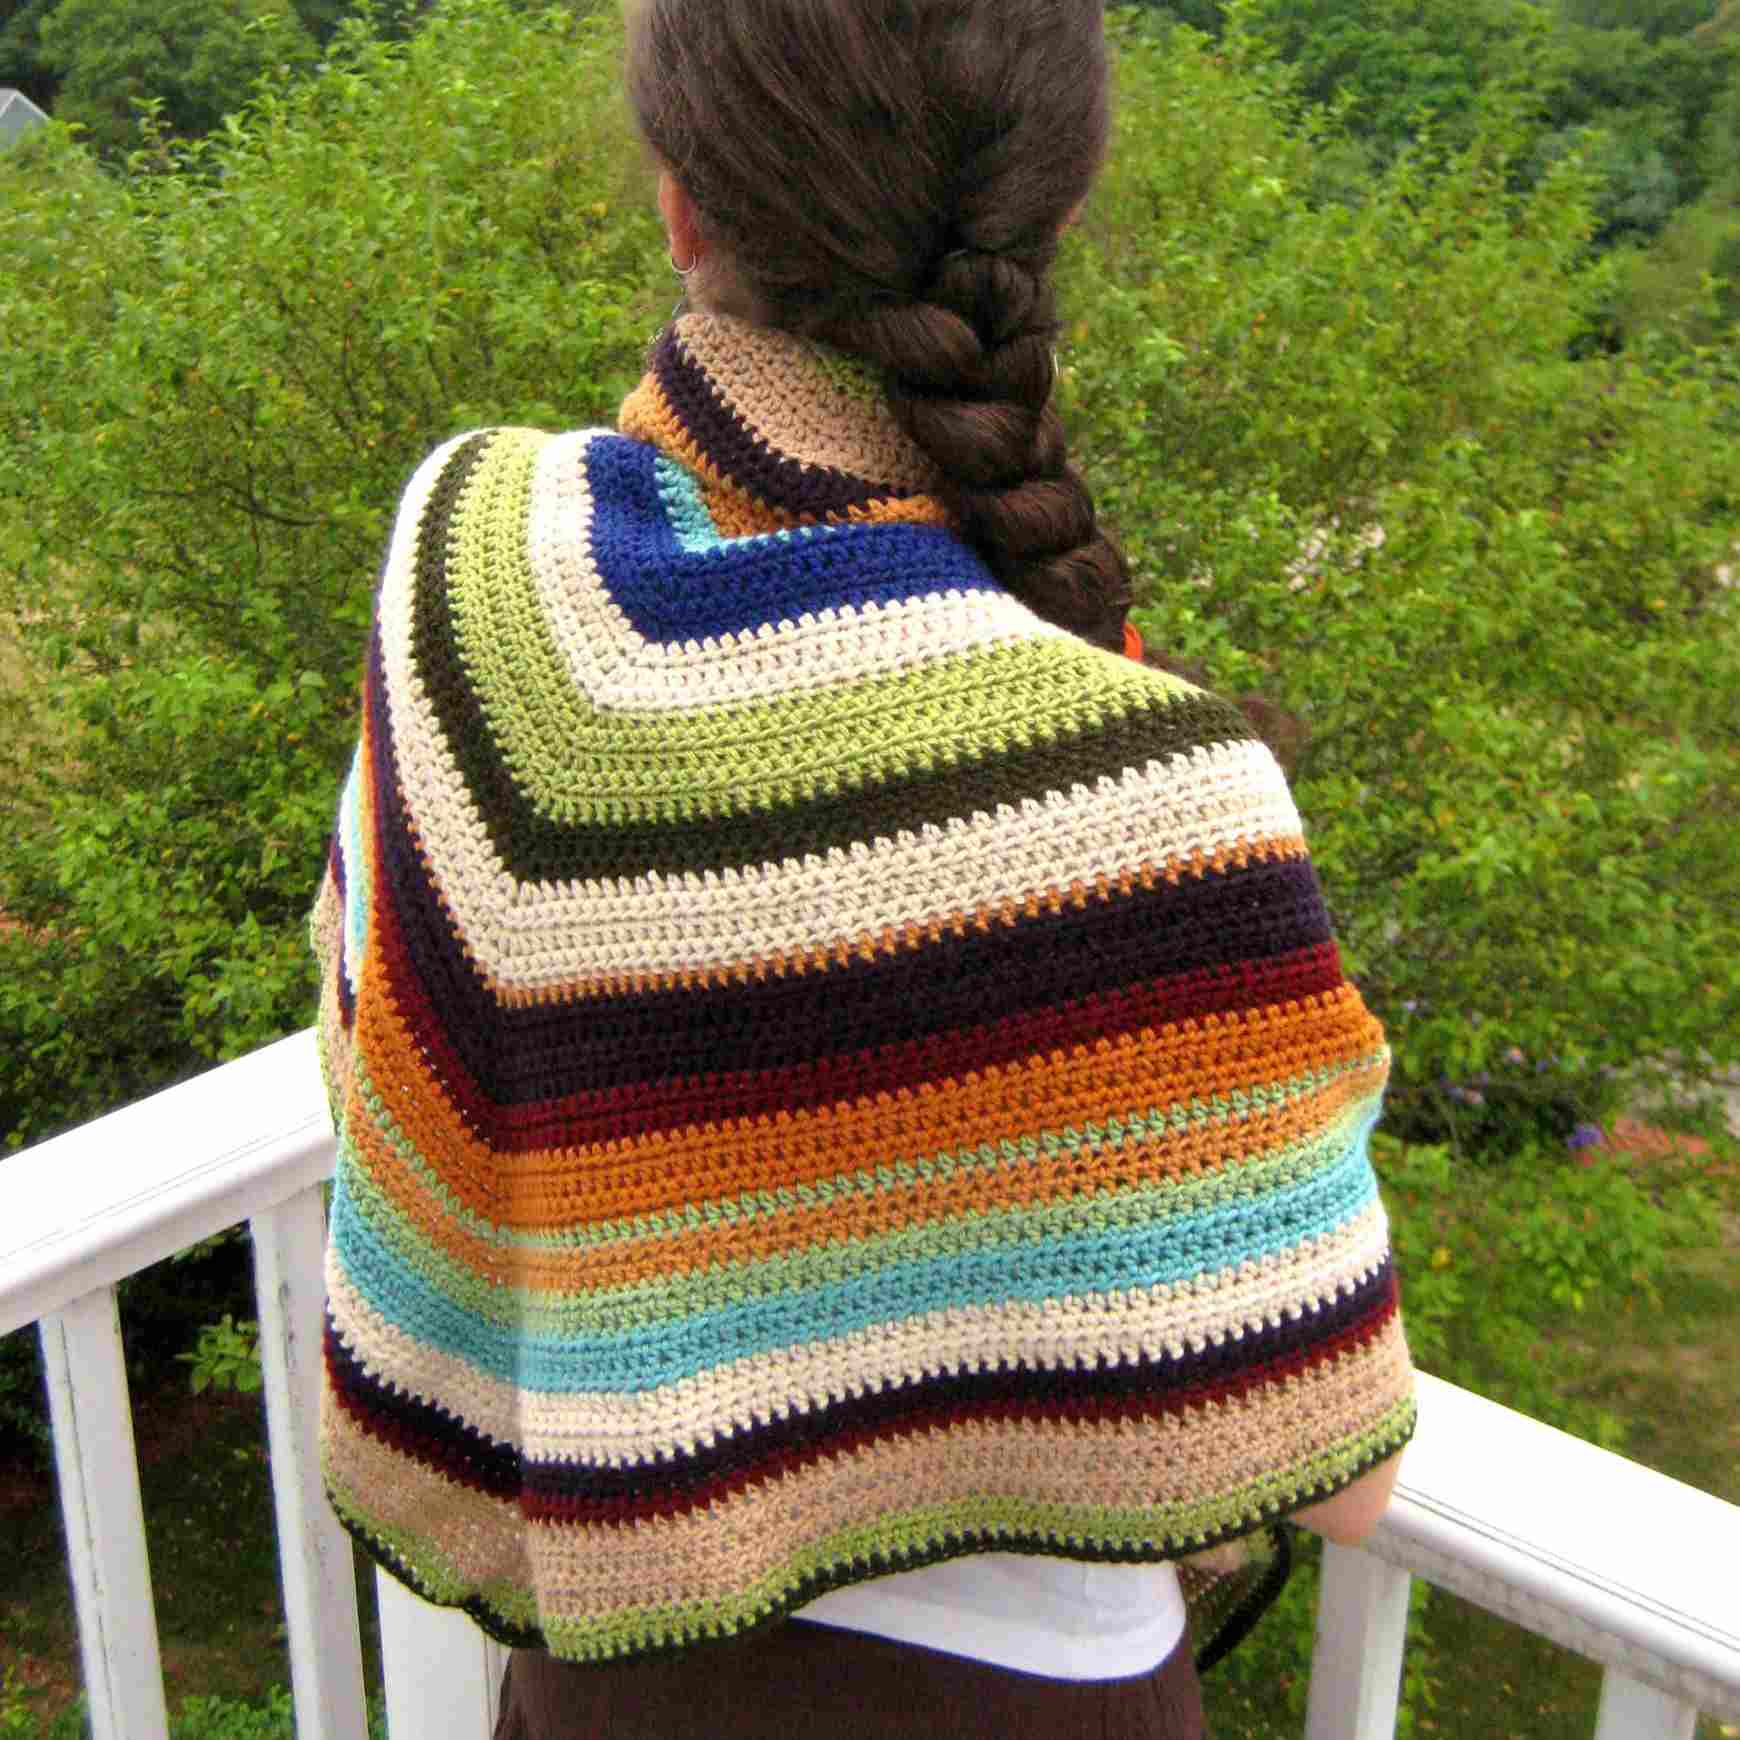 List of Free Crochet Patterns for Toddlers Ponchos 10 Free Crochet Shawl Patterns